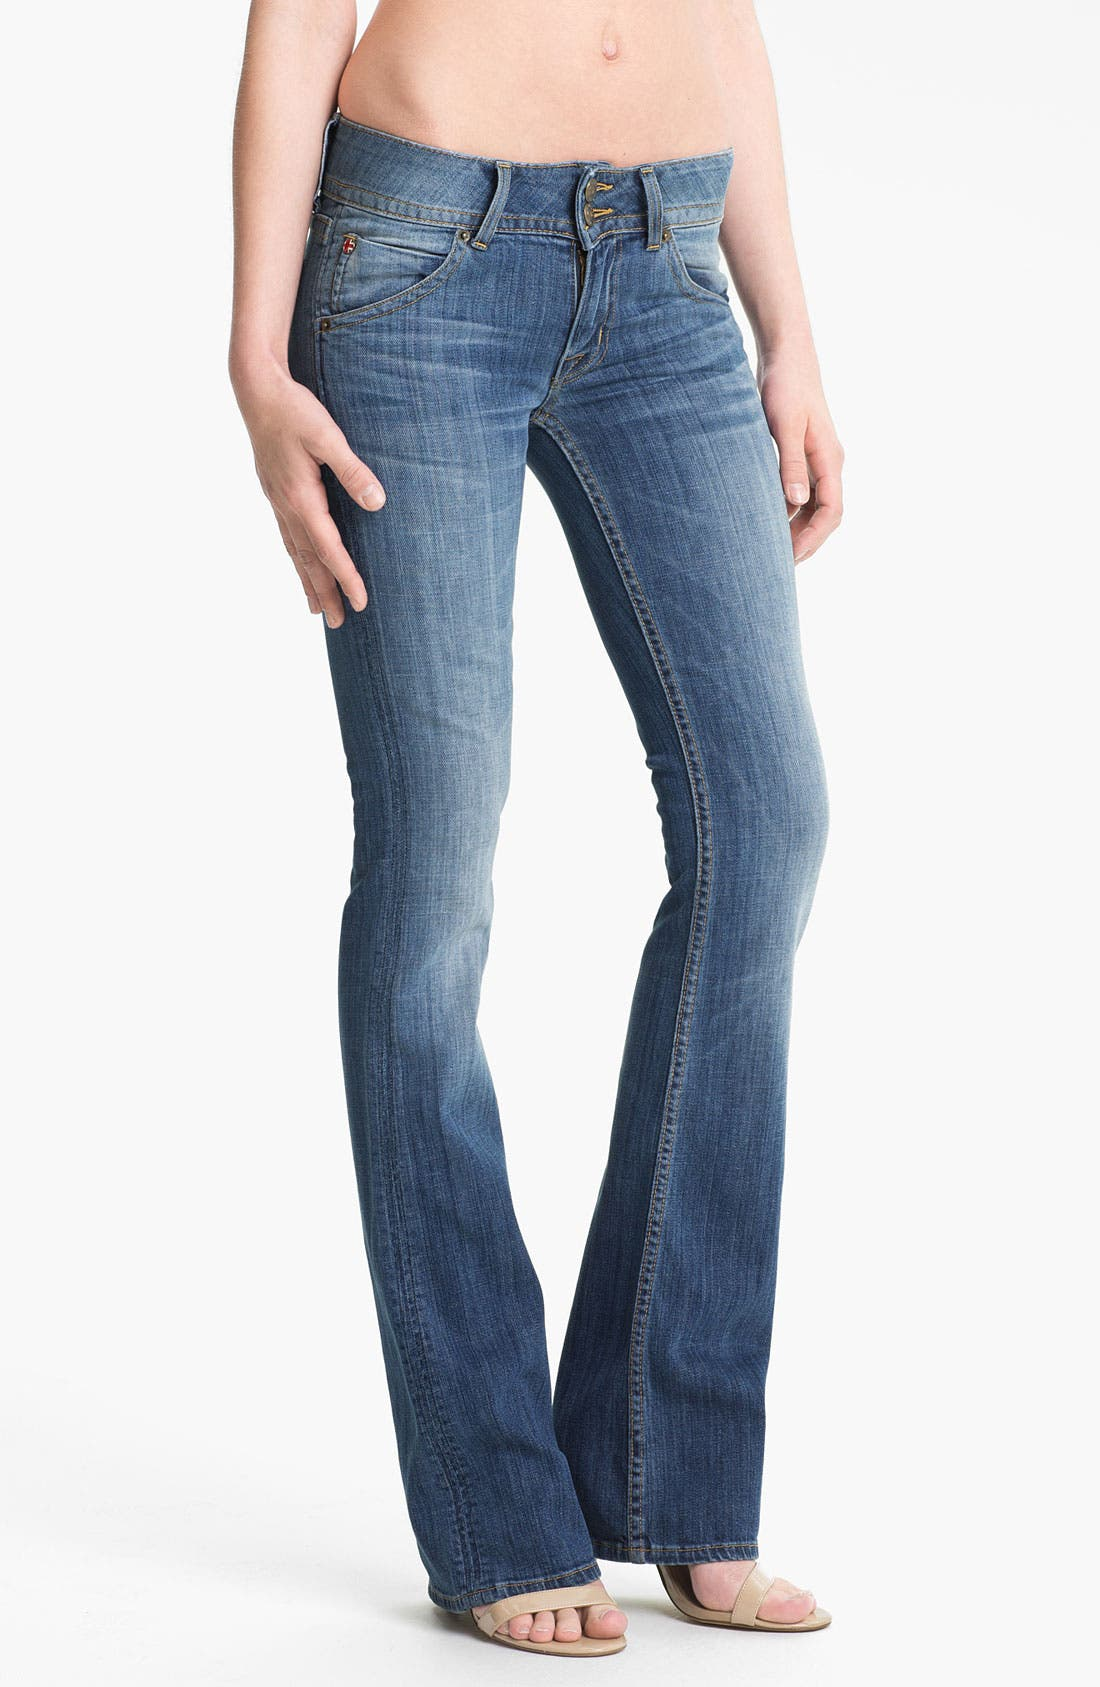 Alternate Image 1 Selected - Hudson Jeans Signature Flap Pocket Bootcut Jeans (Milo)